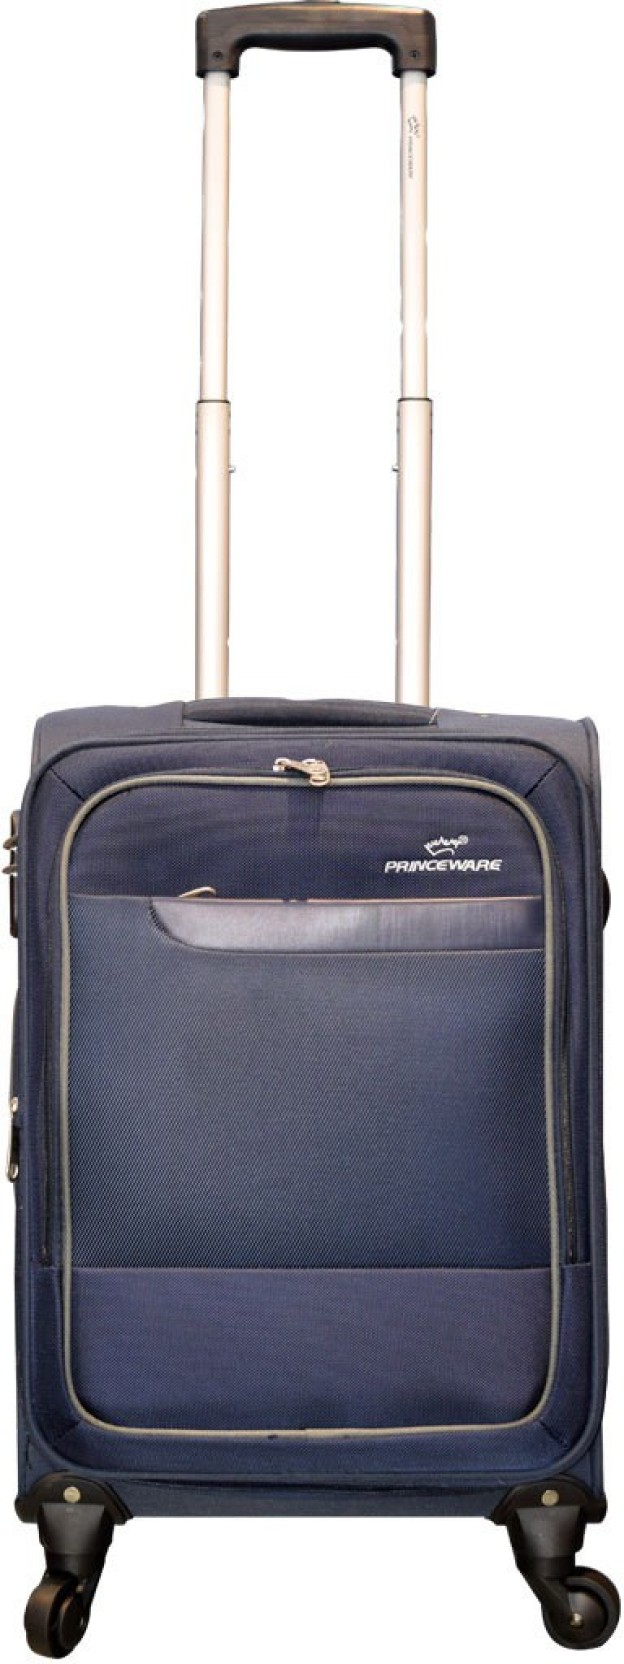 9be6bc0db828c9 Princeware JORDAN Expandable Cabin Luggage - 20 inch Navy Blue ...